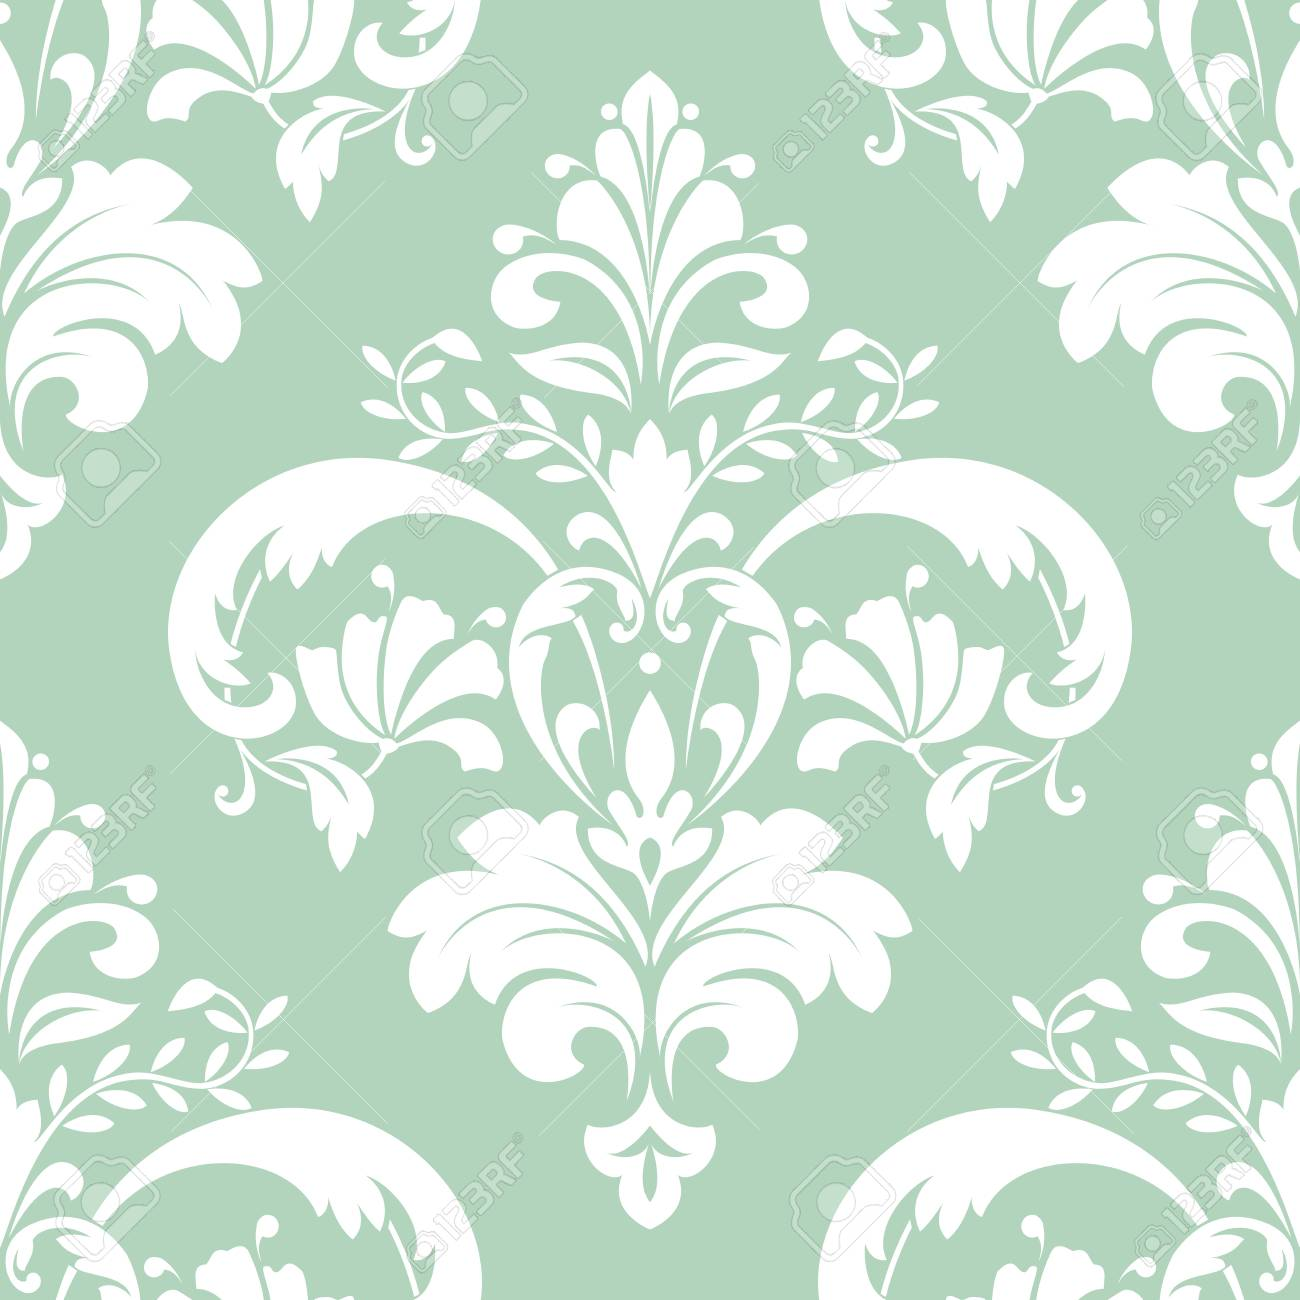 Floral Pattern Wallpaper Seamless Vector Background Green And White Ornament Graphic Modern